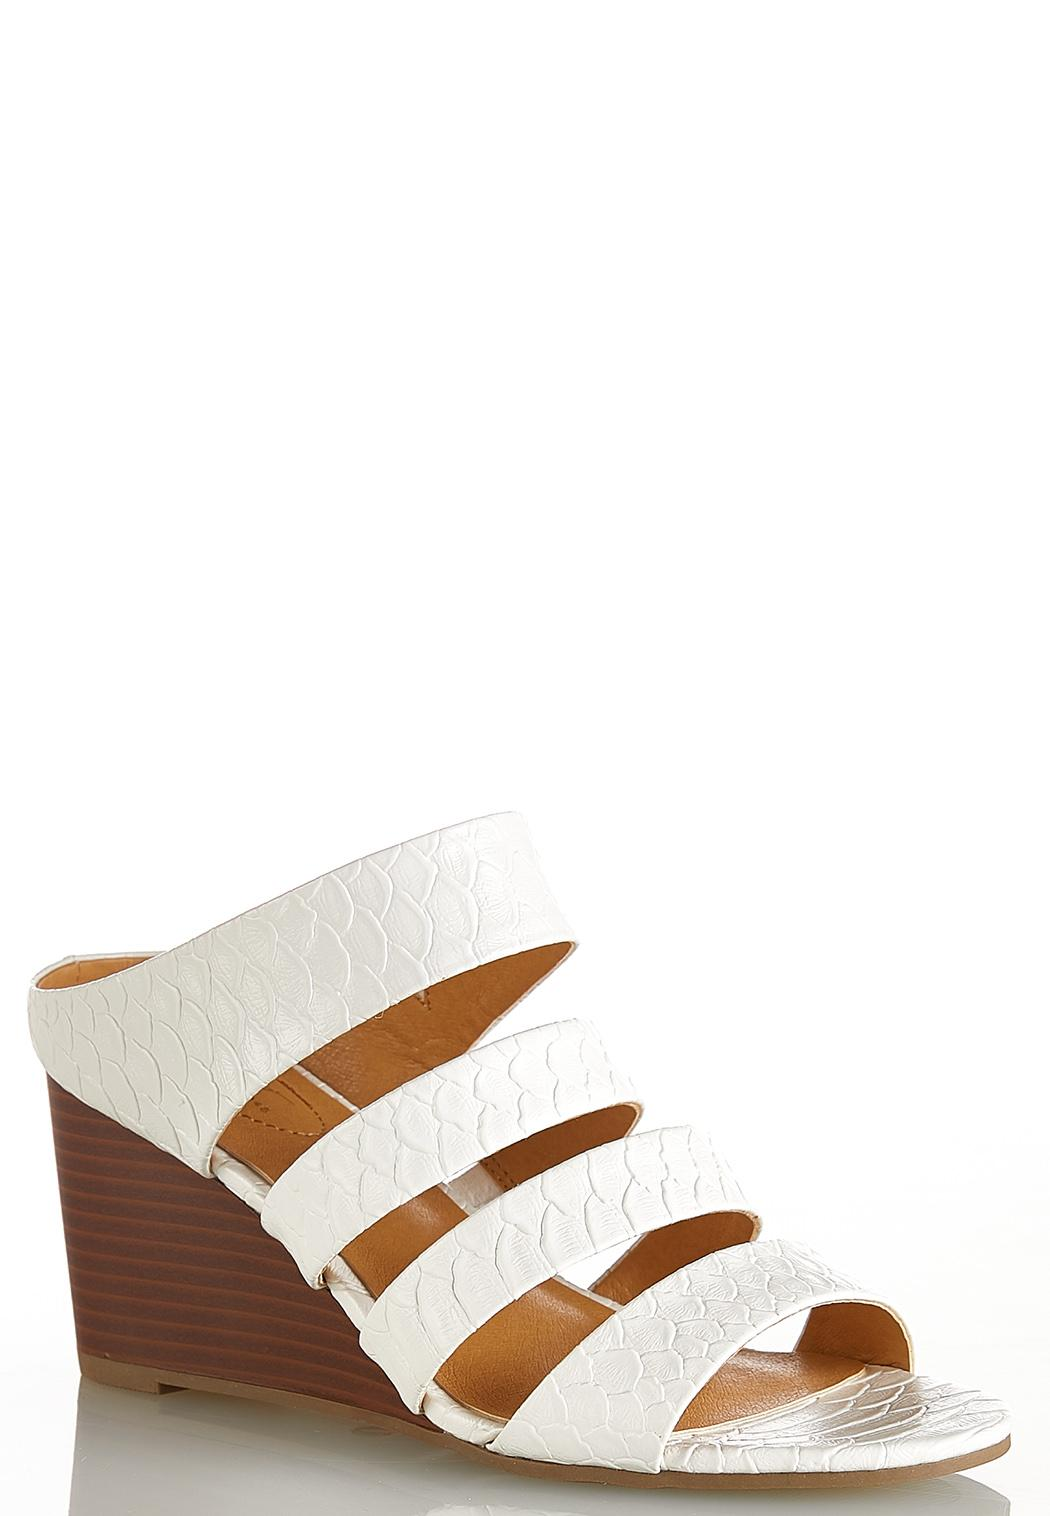 Textured Band White Wedges